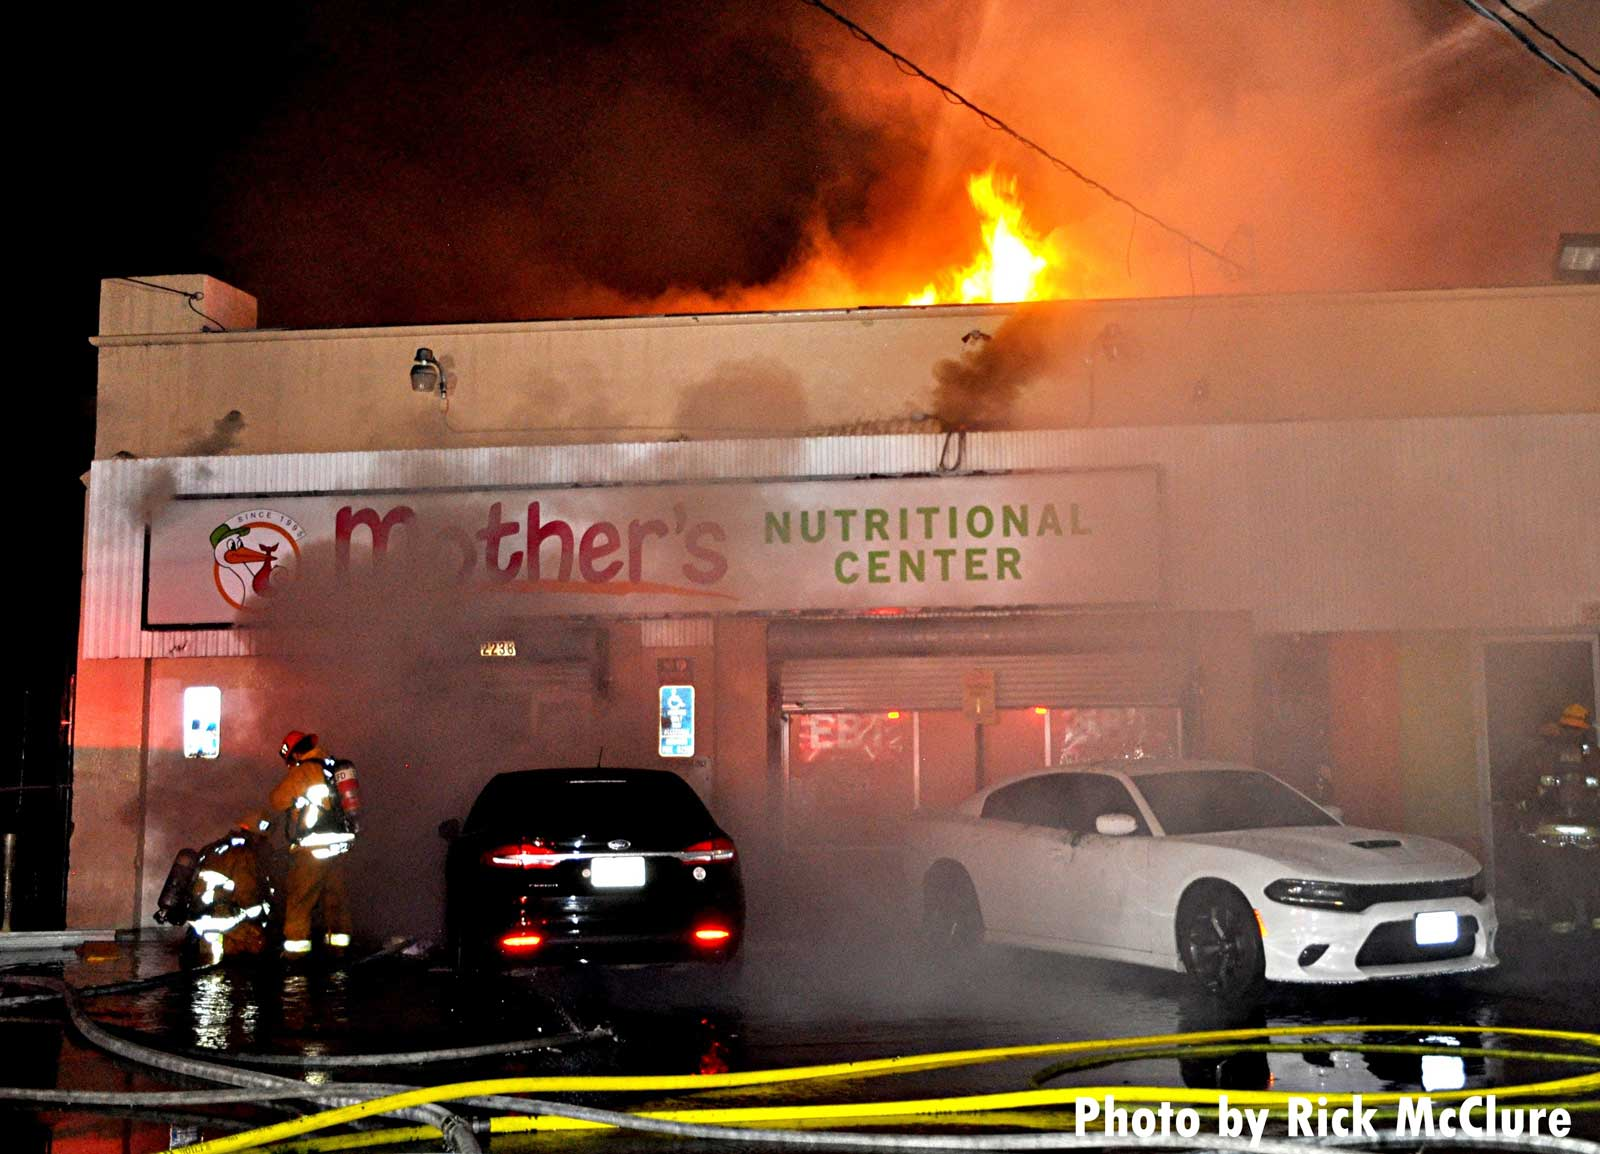 Fire rages in a large building in Los Angeles